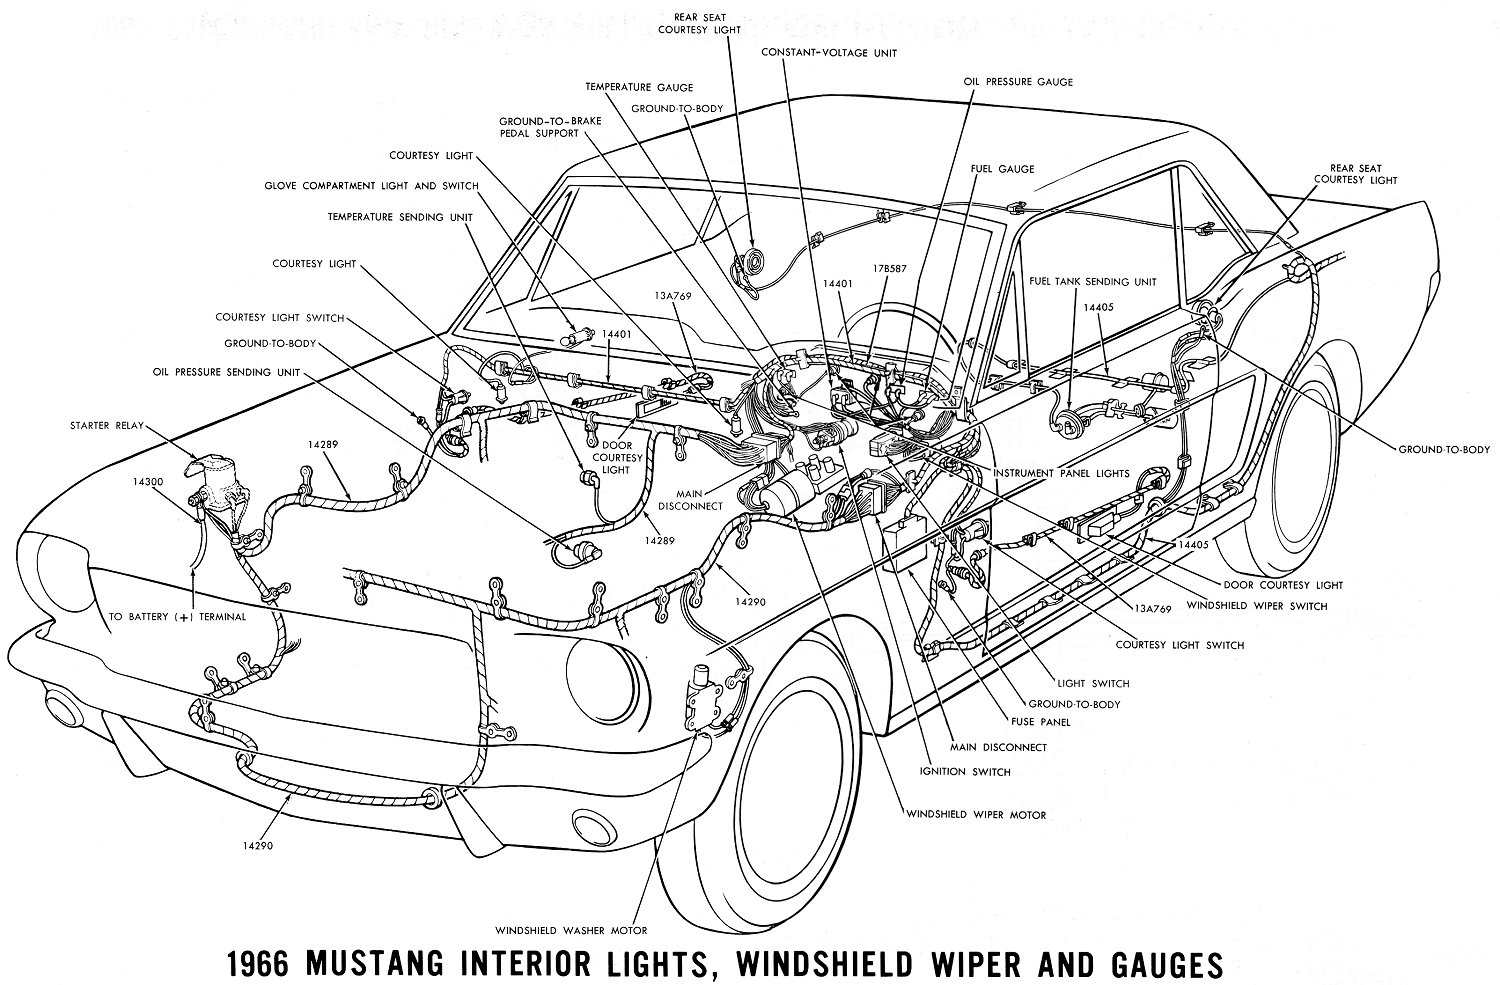 [SCHEMATICS_4FD]  Vintage Mustang Wiring Diagrams   1966 Mustang Dash Wiring Diagram Free Picture      jacobsonrs.tripod.com